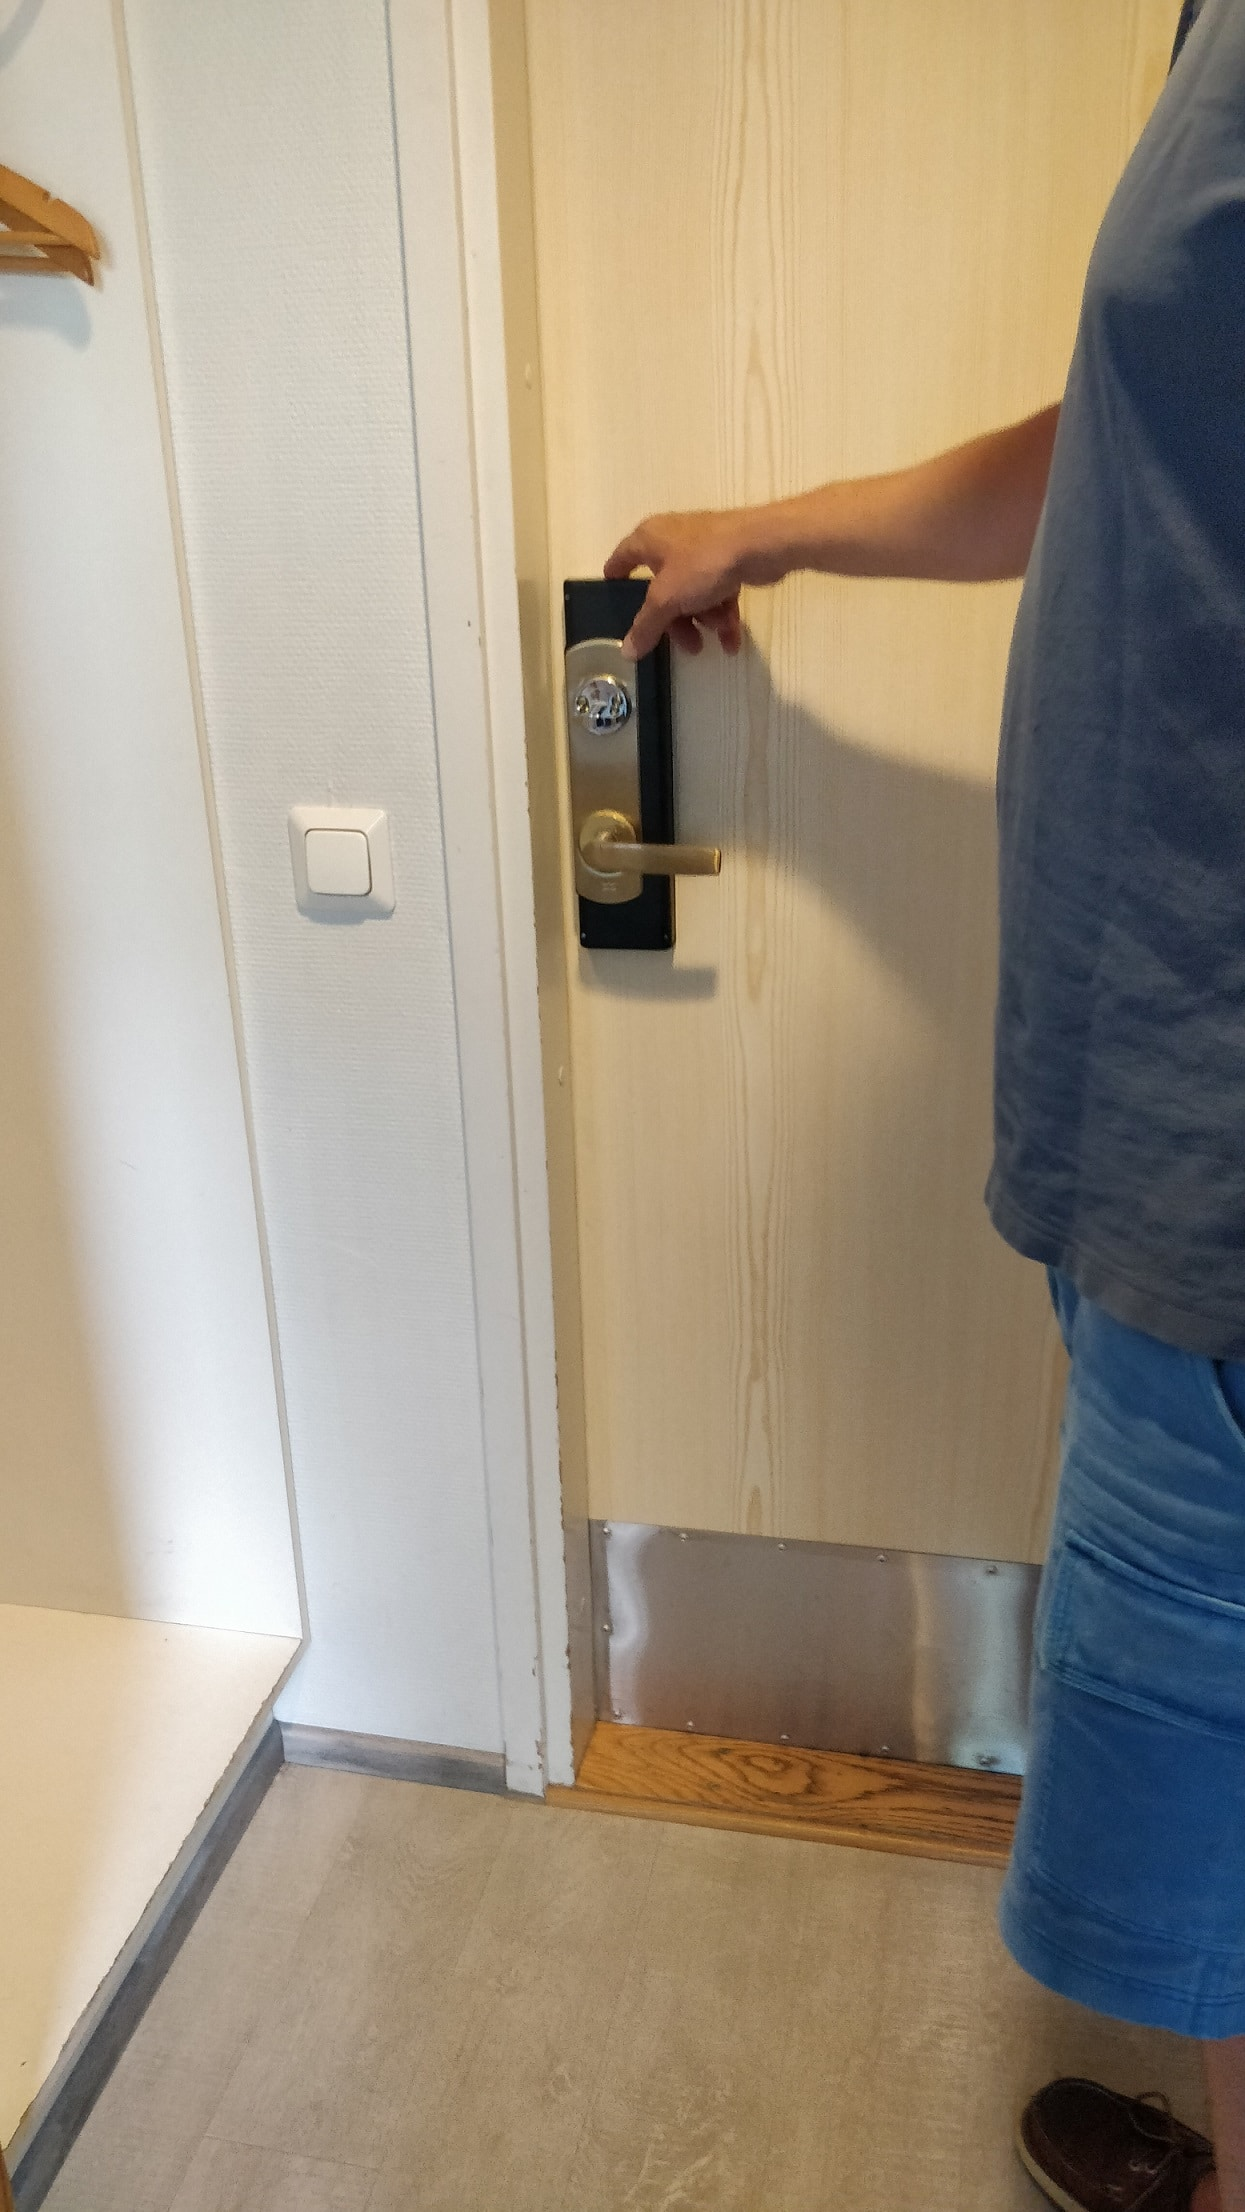 person opening hotel door from the inside